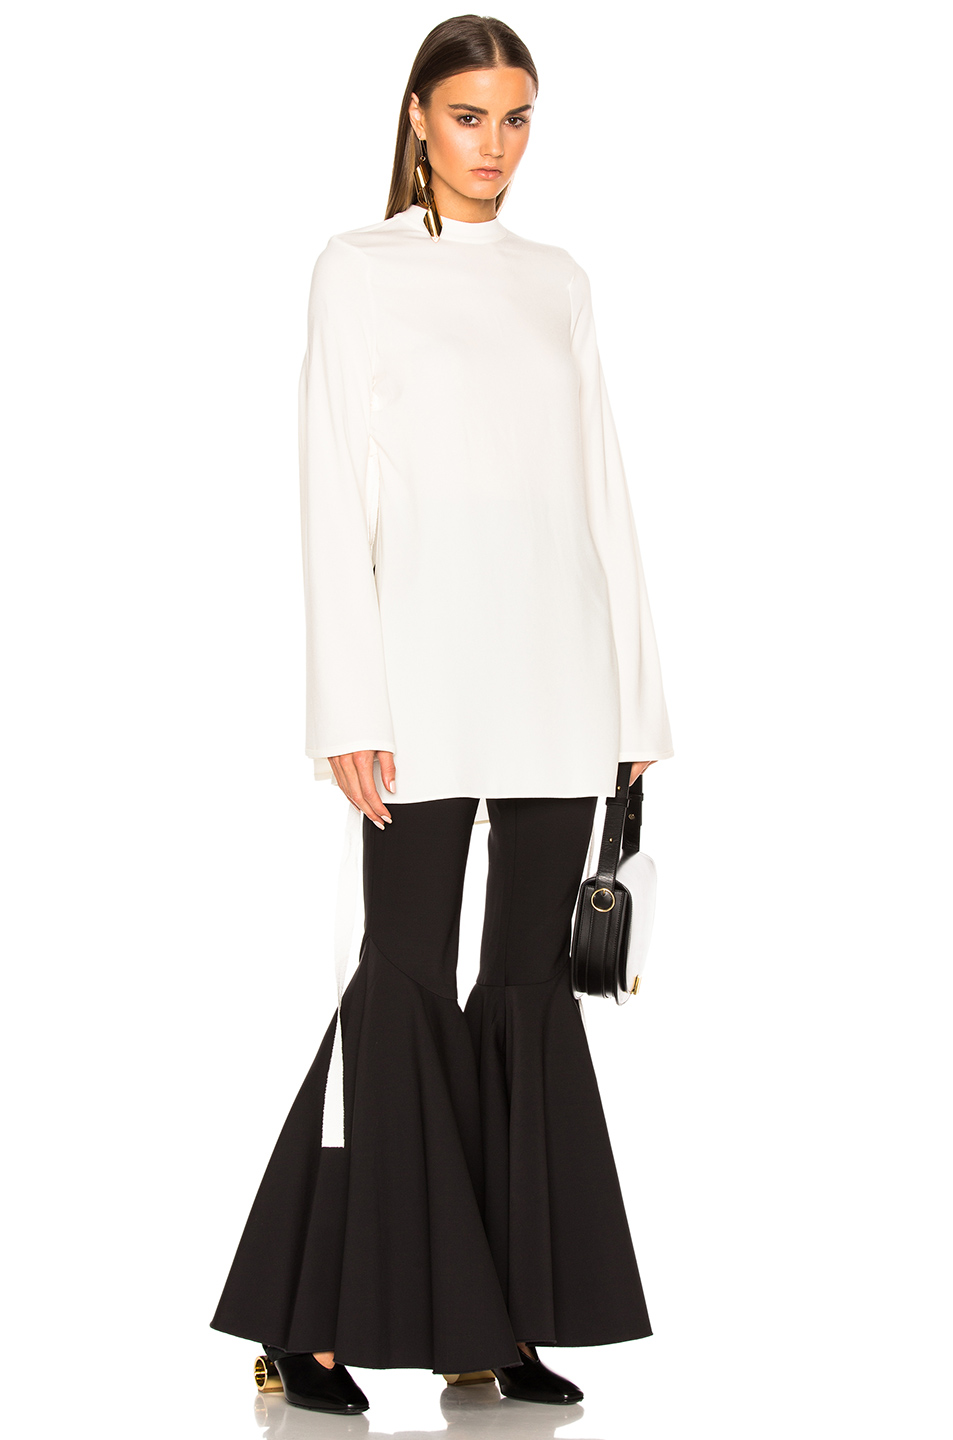 Ellery Purify Top in White